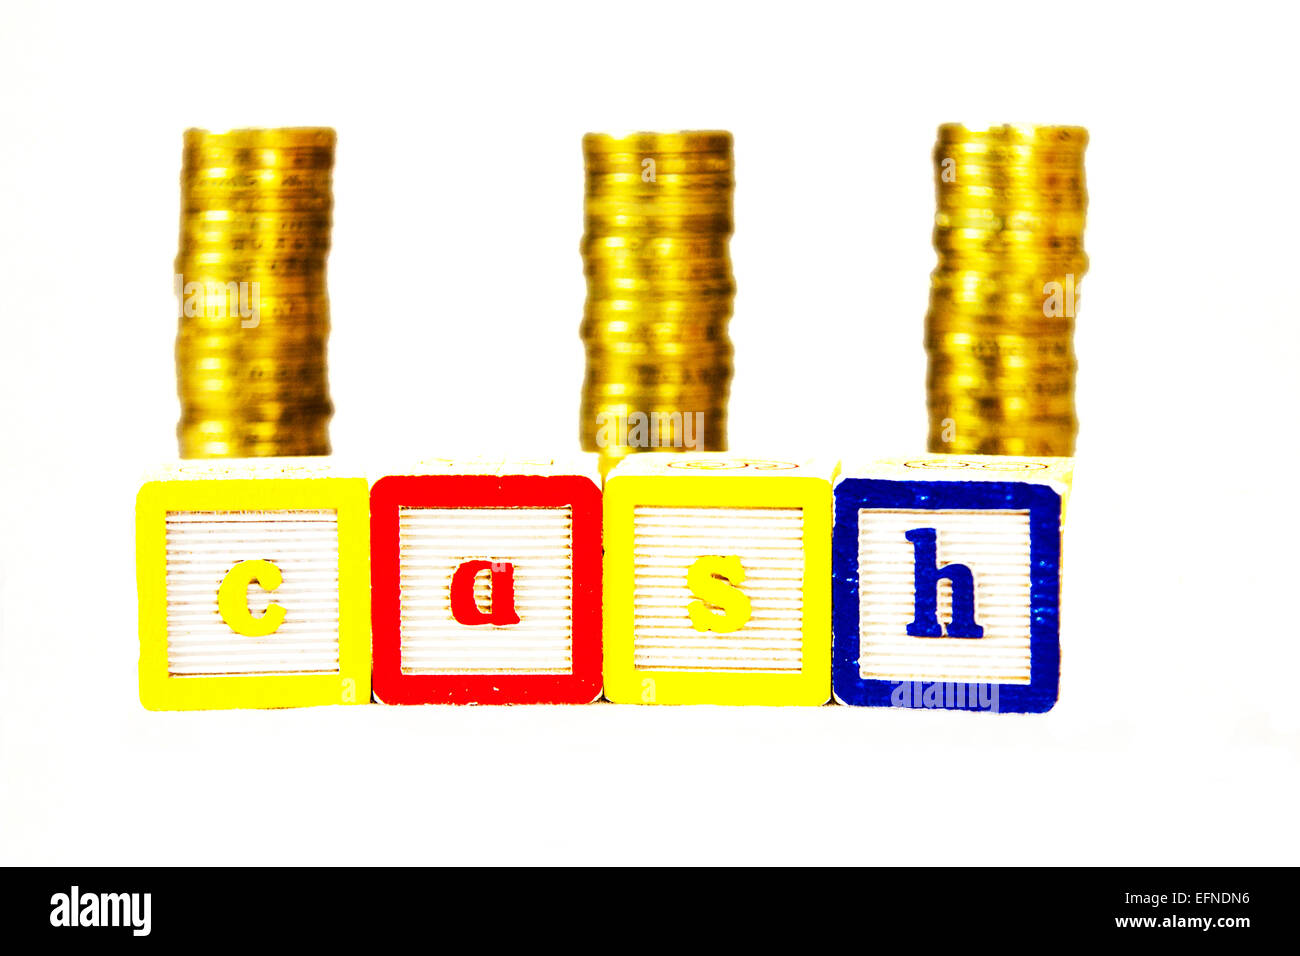 cash money coins pound pounds dosh rich wealthy bills pay payment invest  investment cut out copy space white background - Stock Image